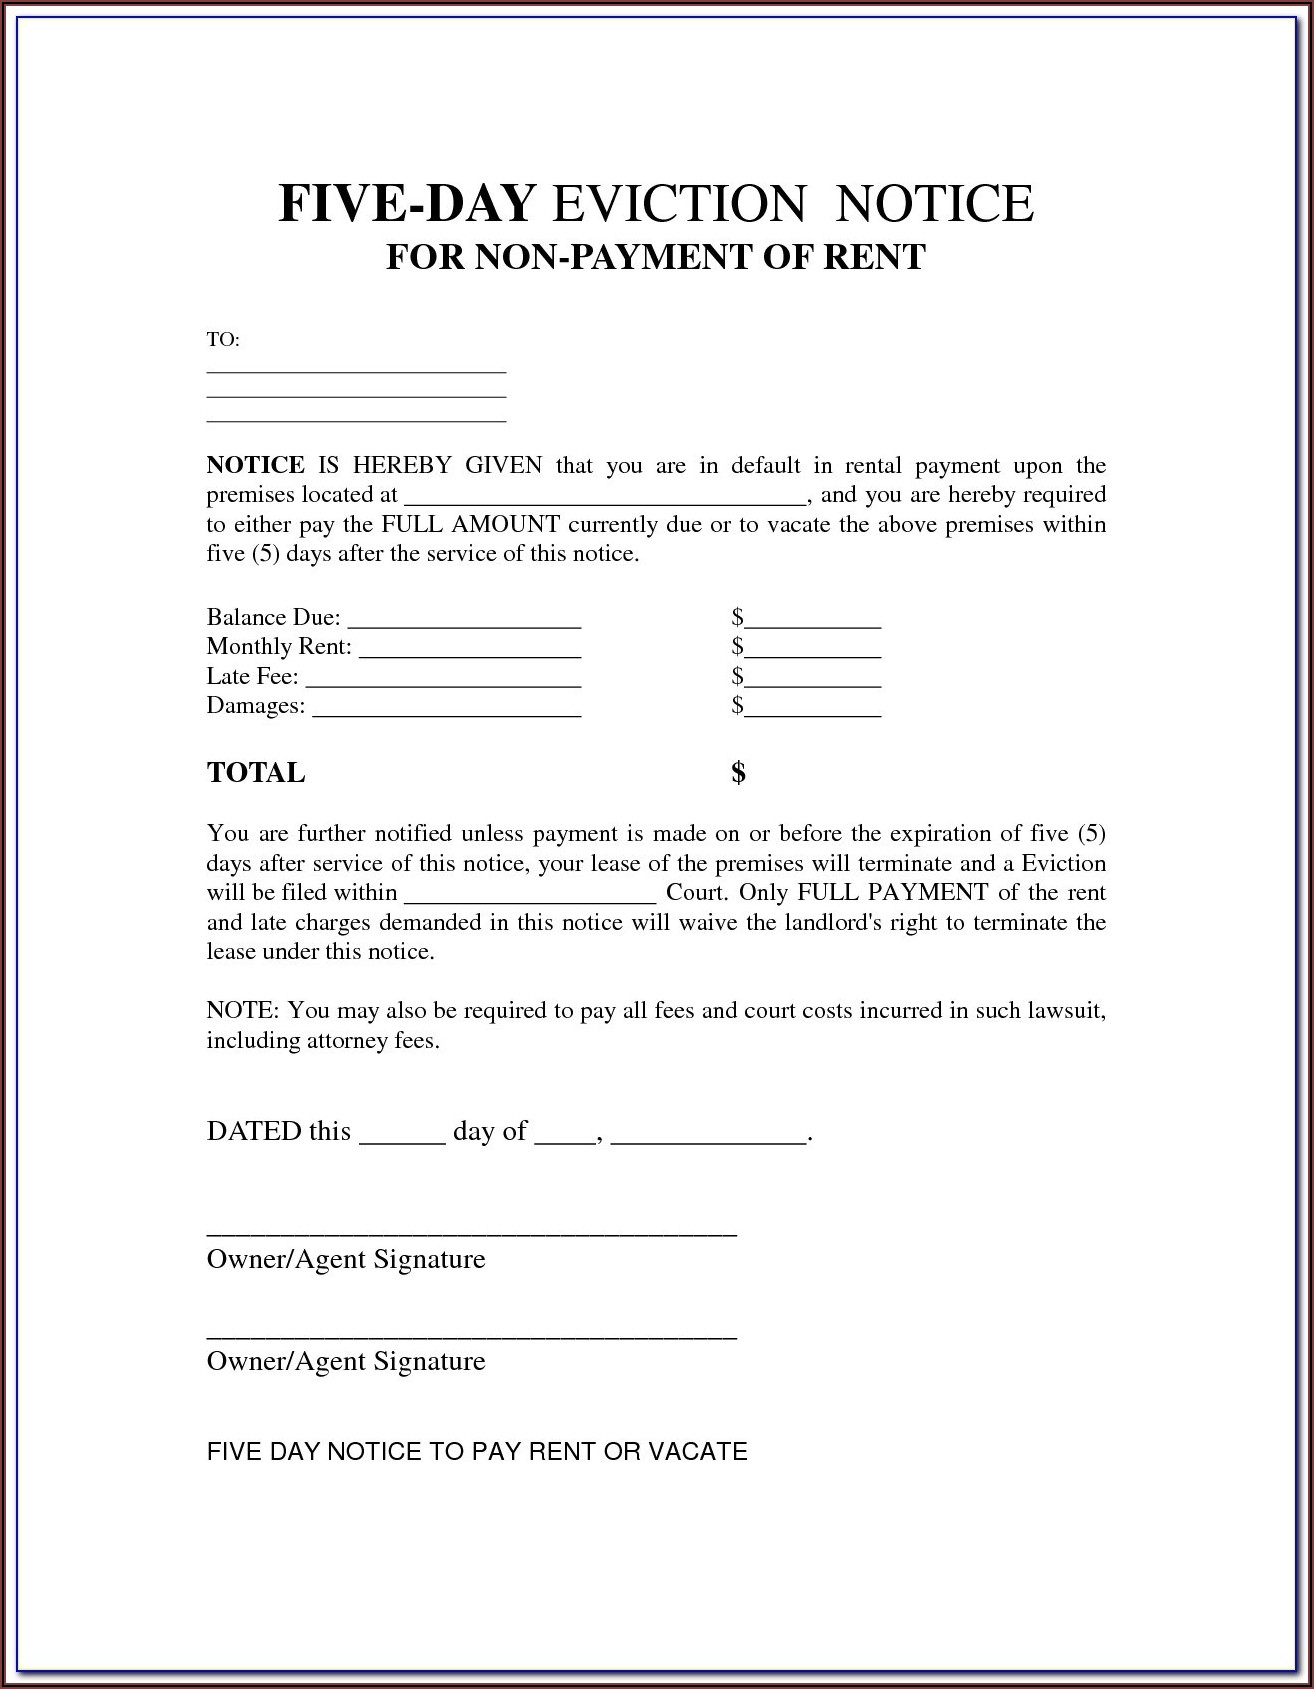 Wisconsin 5 Day Eviction Notice Form